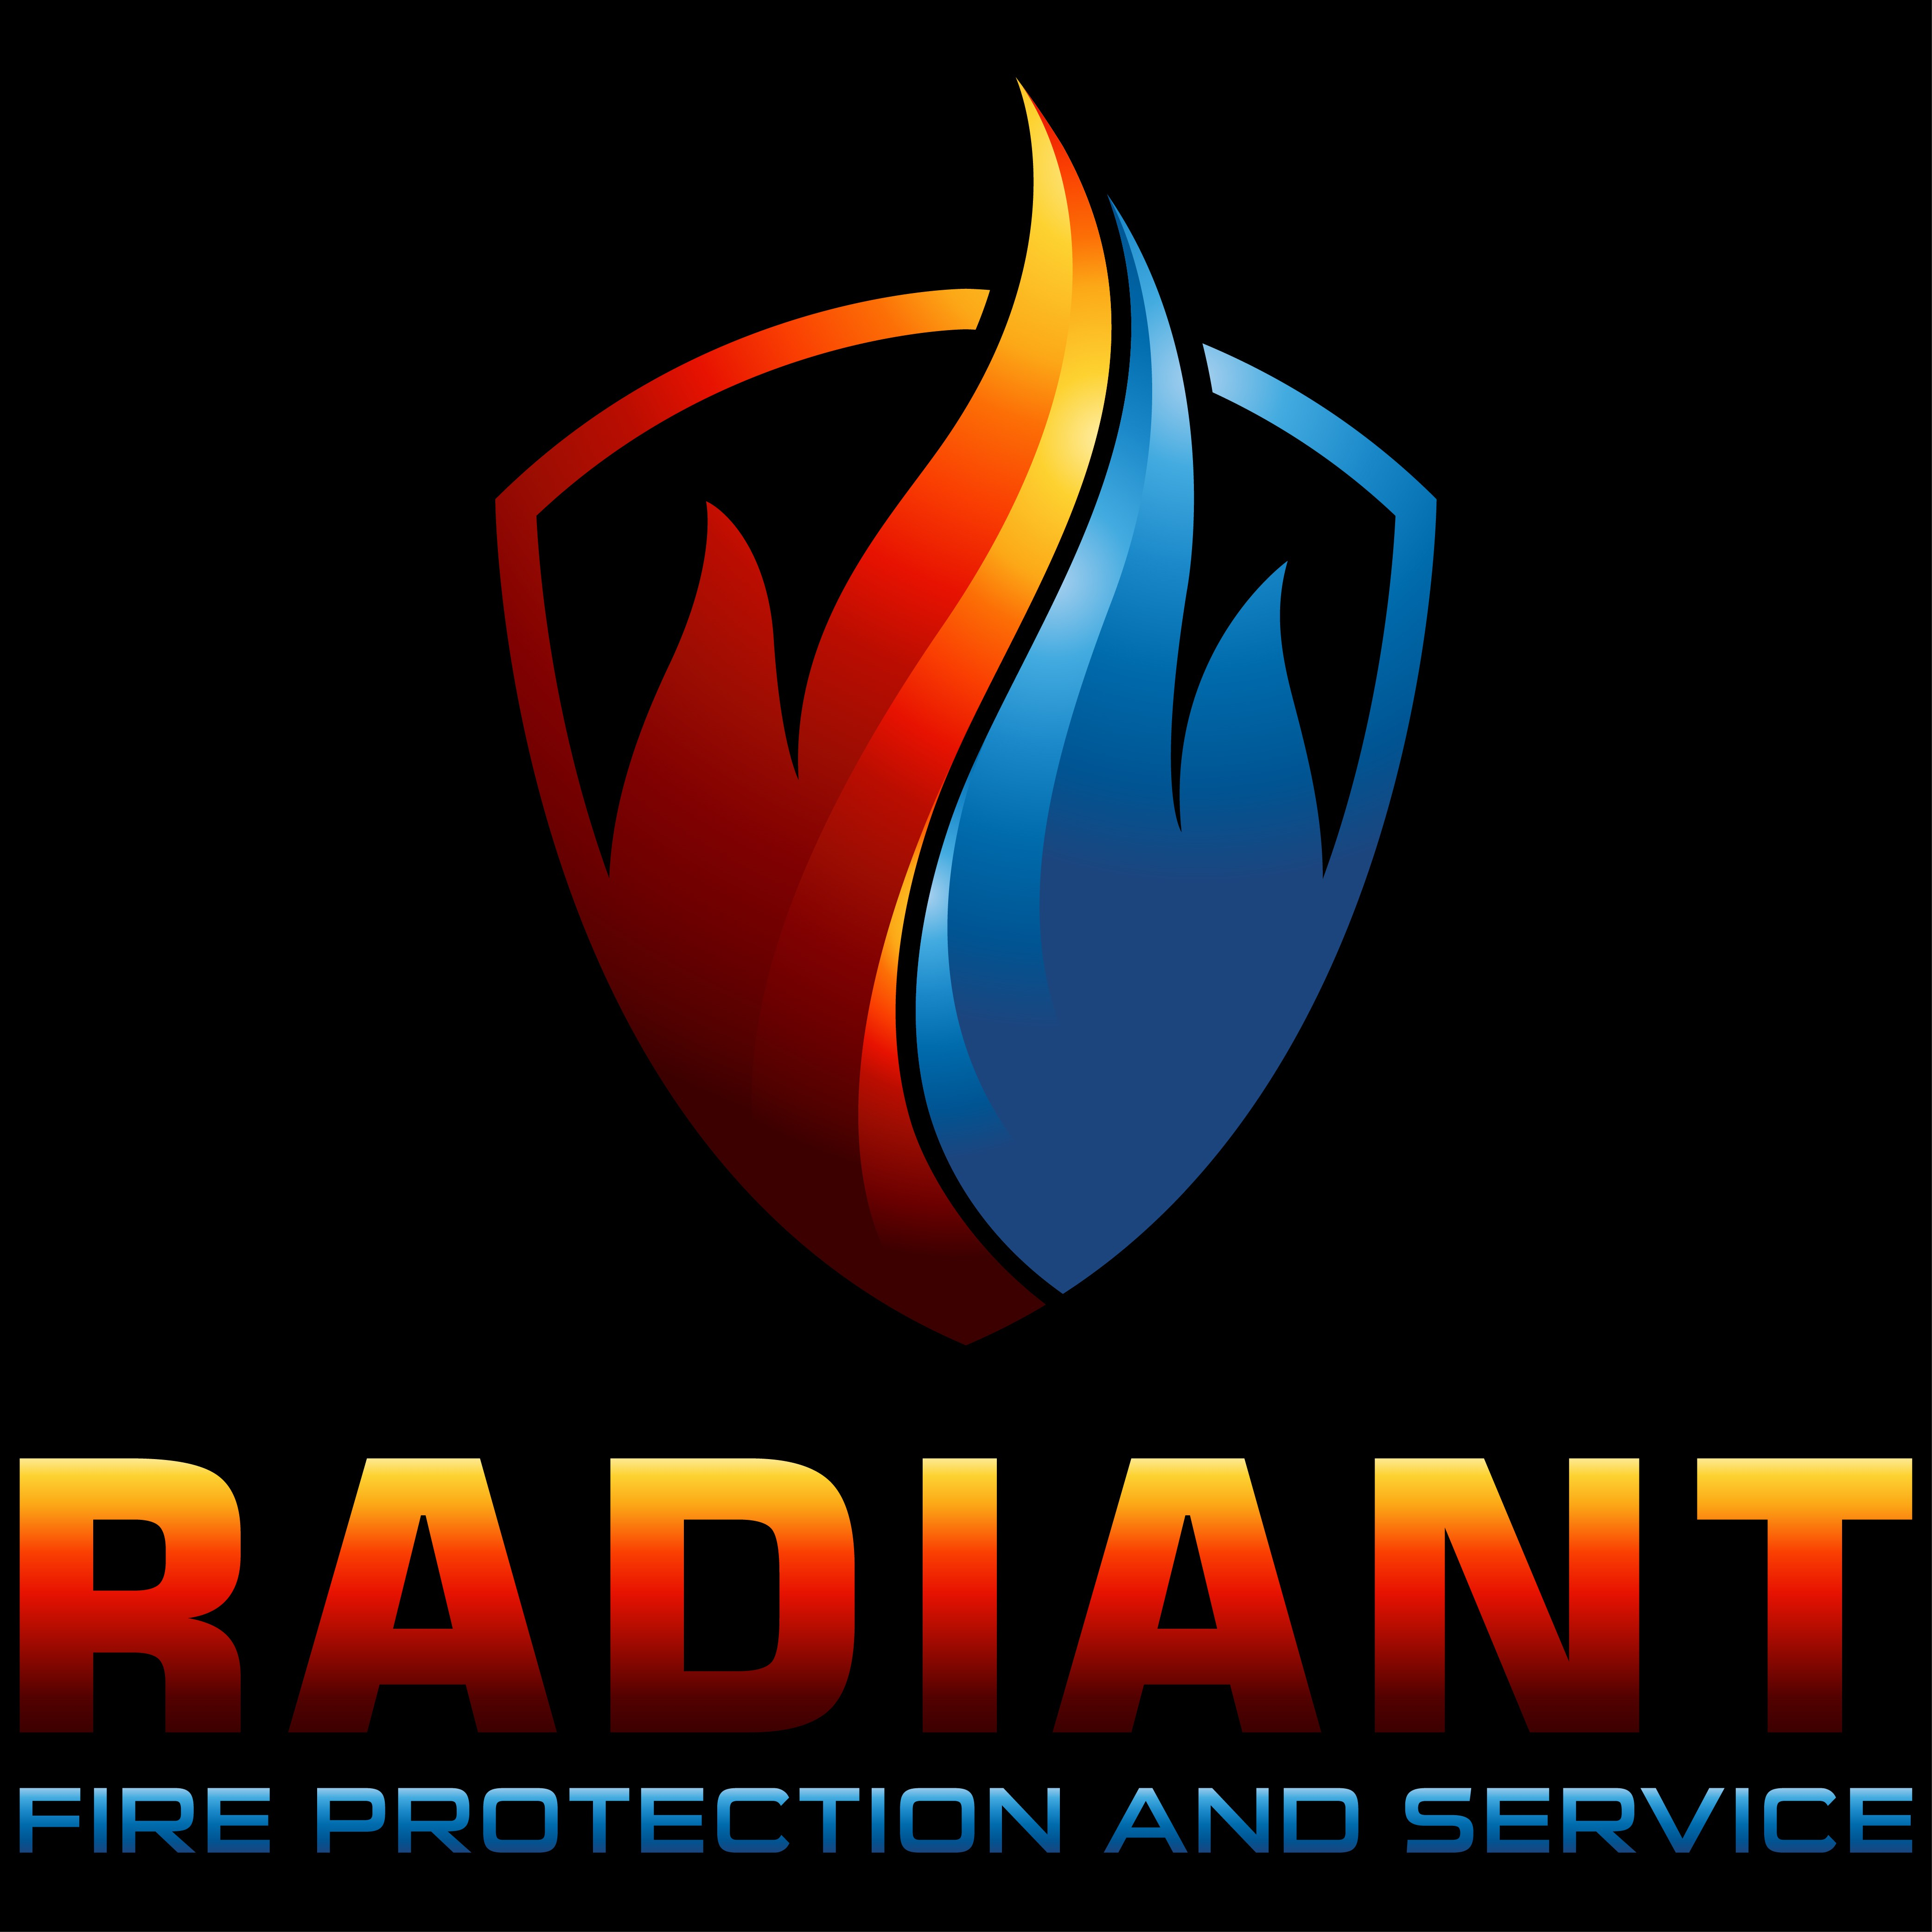 looking for design for new company doing fire and sprinkler systems. Want design that is easy to rea